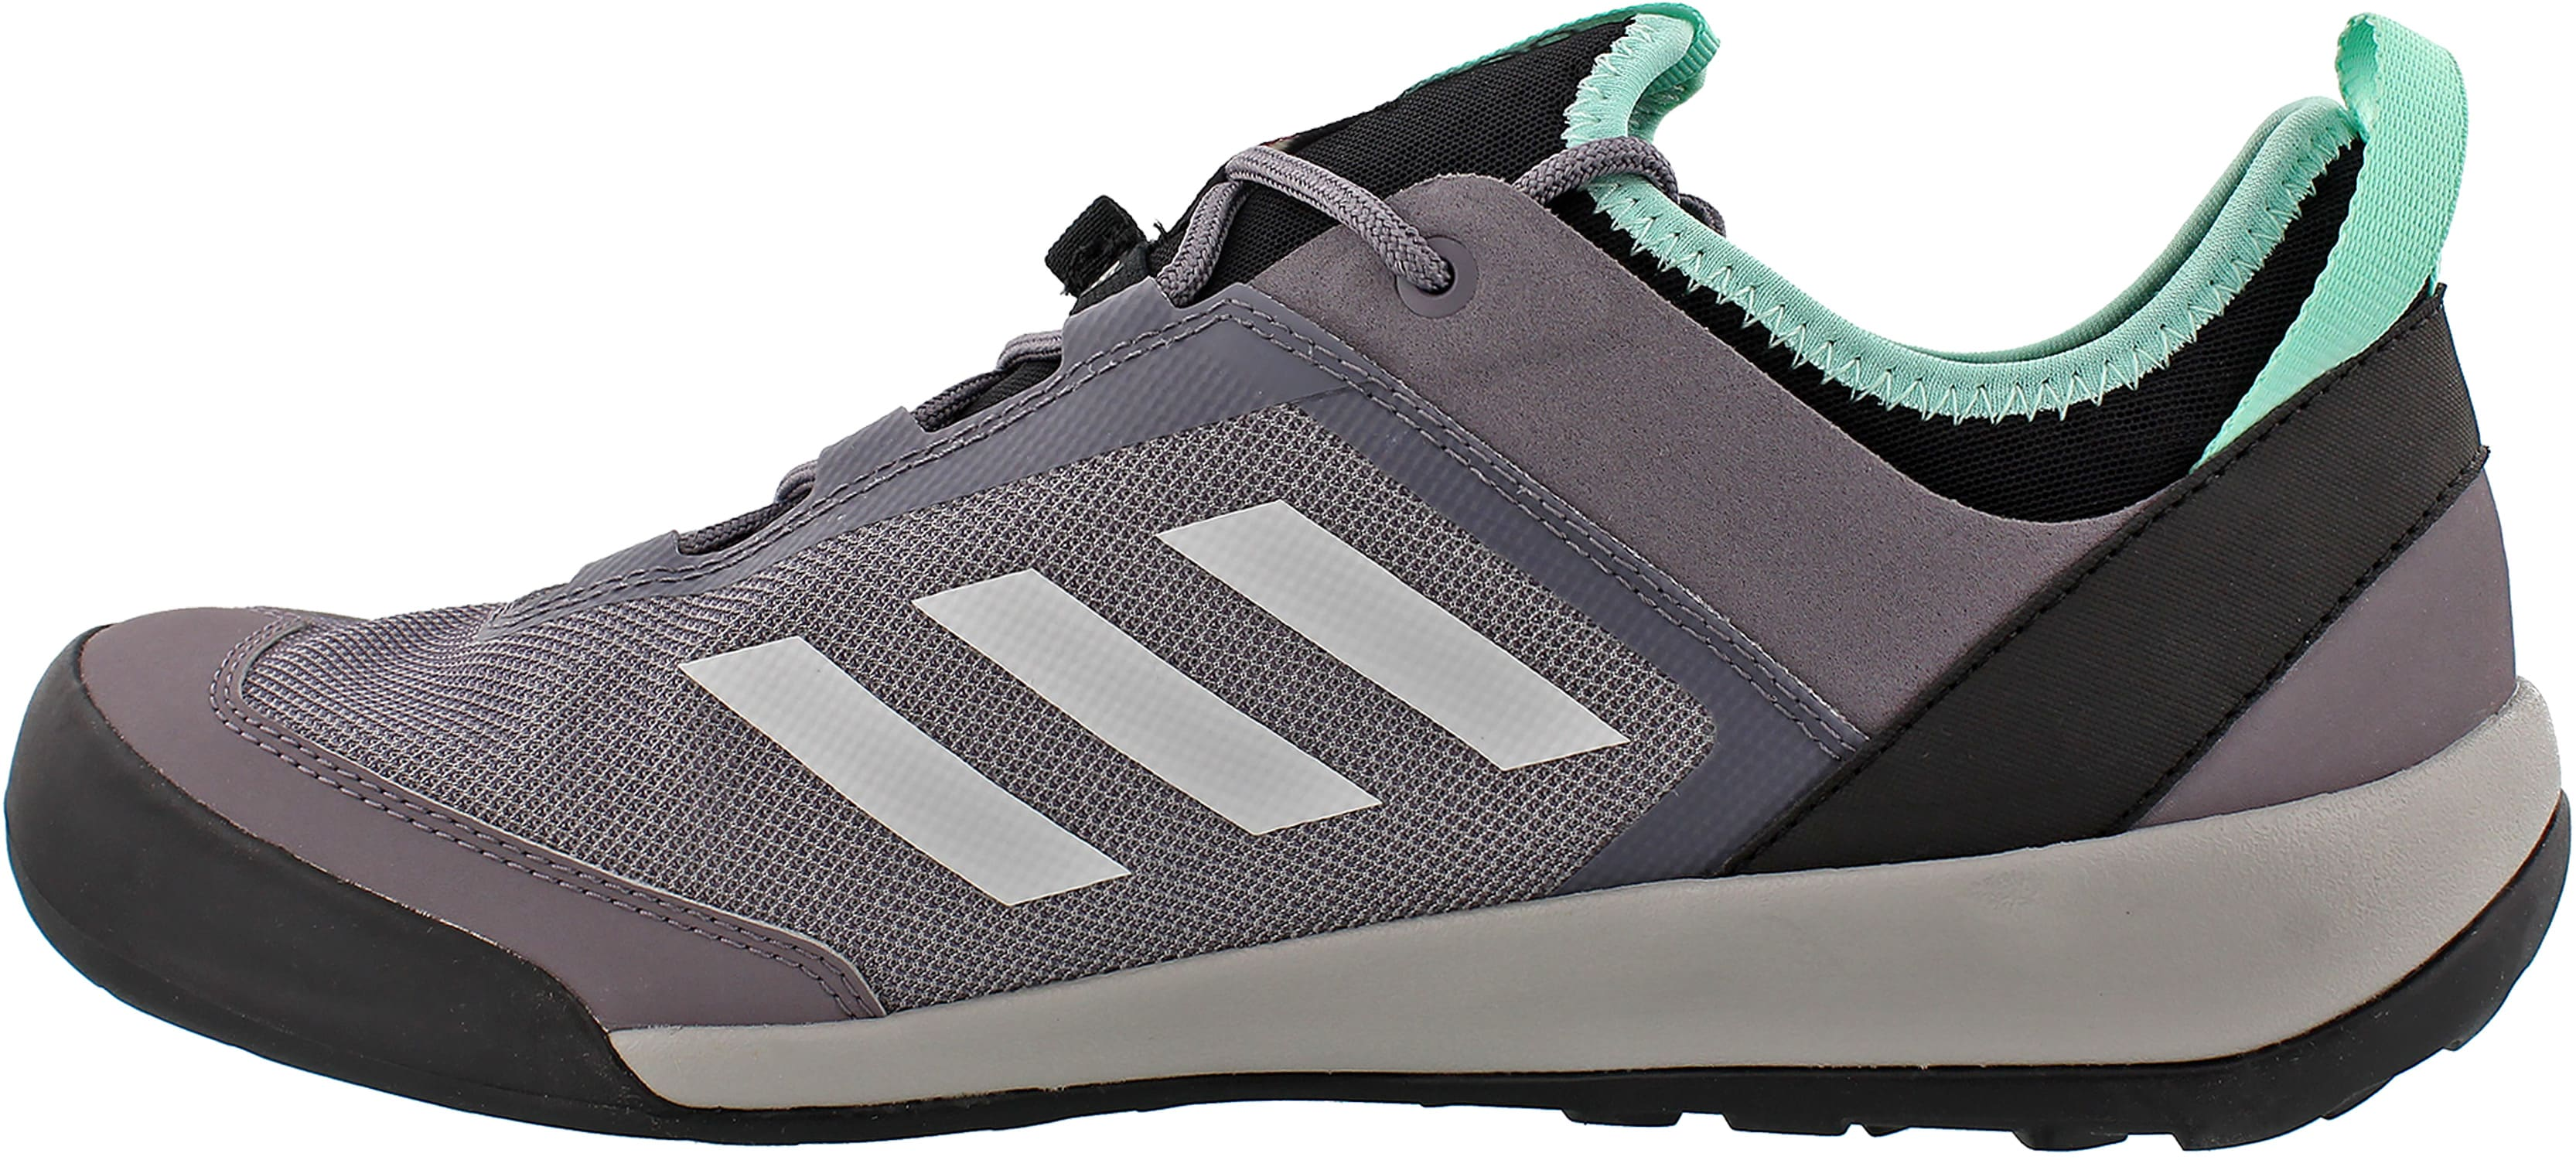 Adidas Terrex Solo Stealth Hiking Shoes